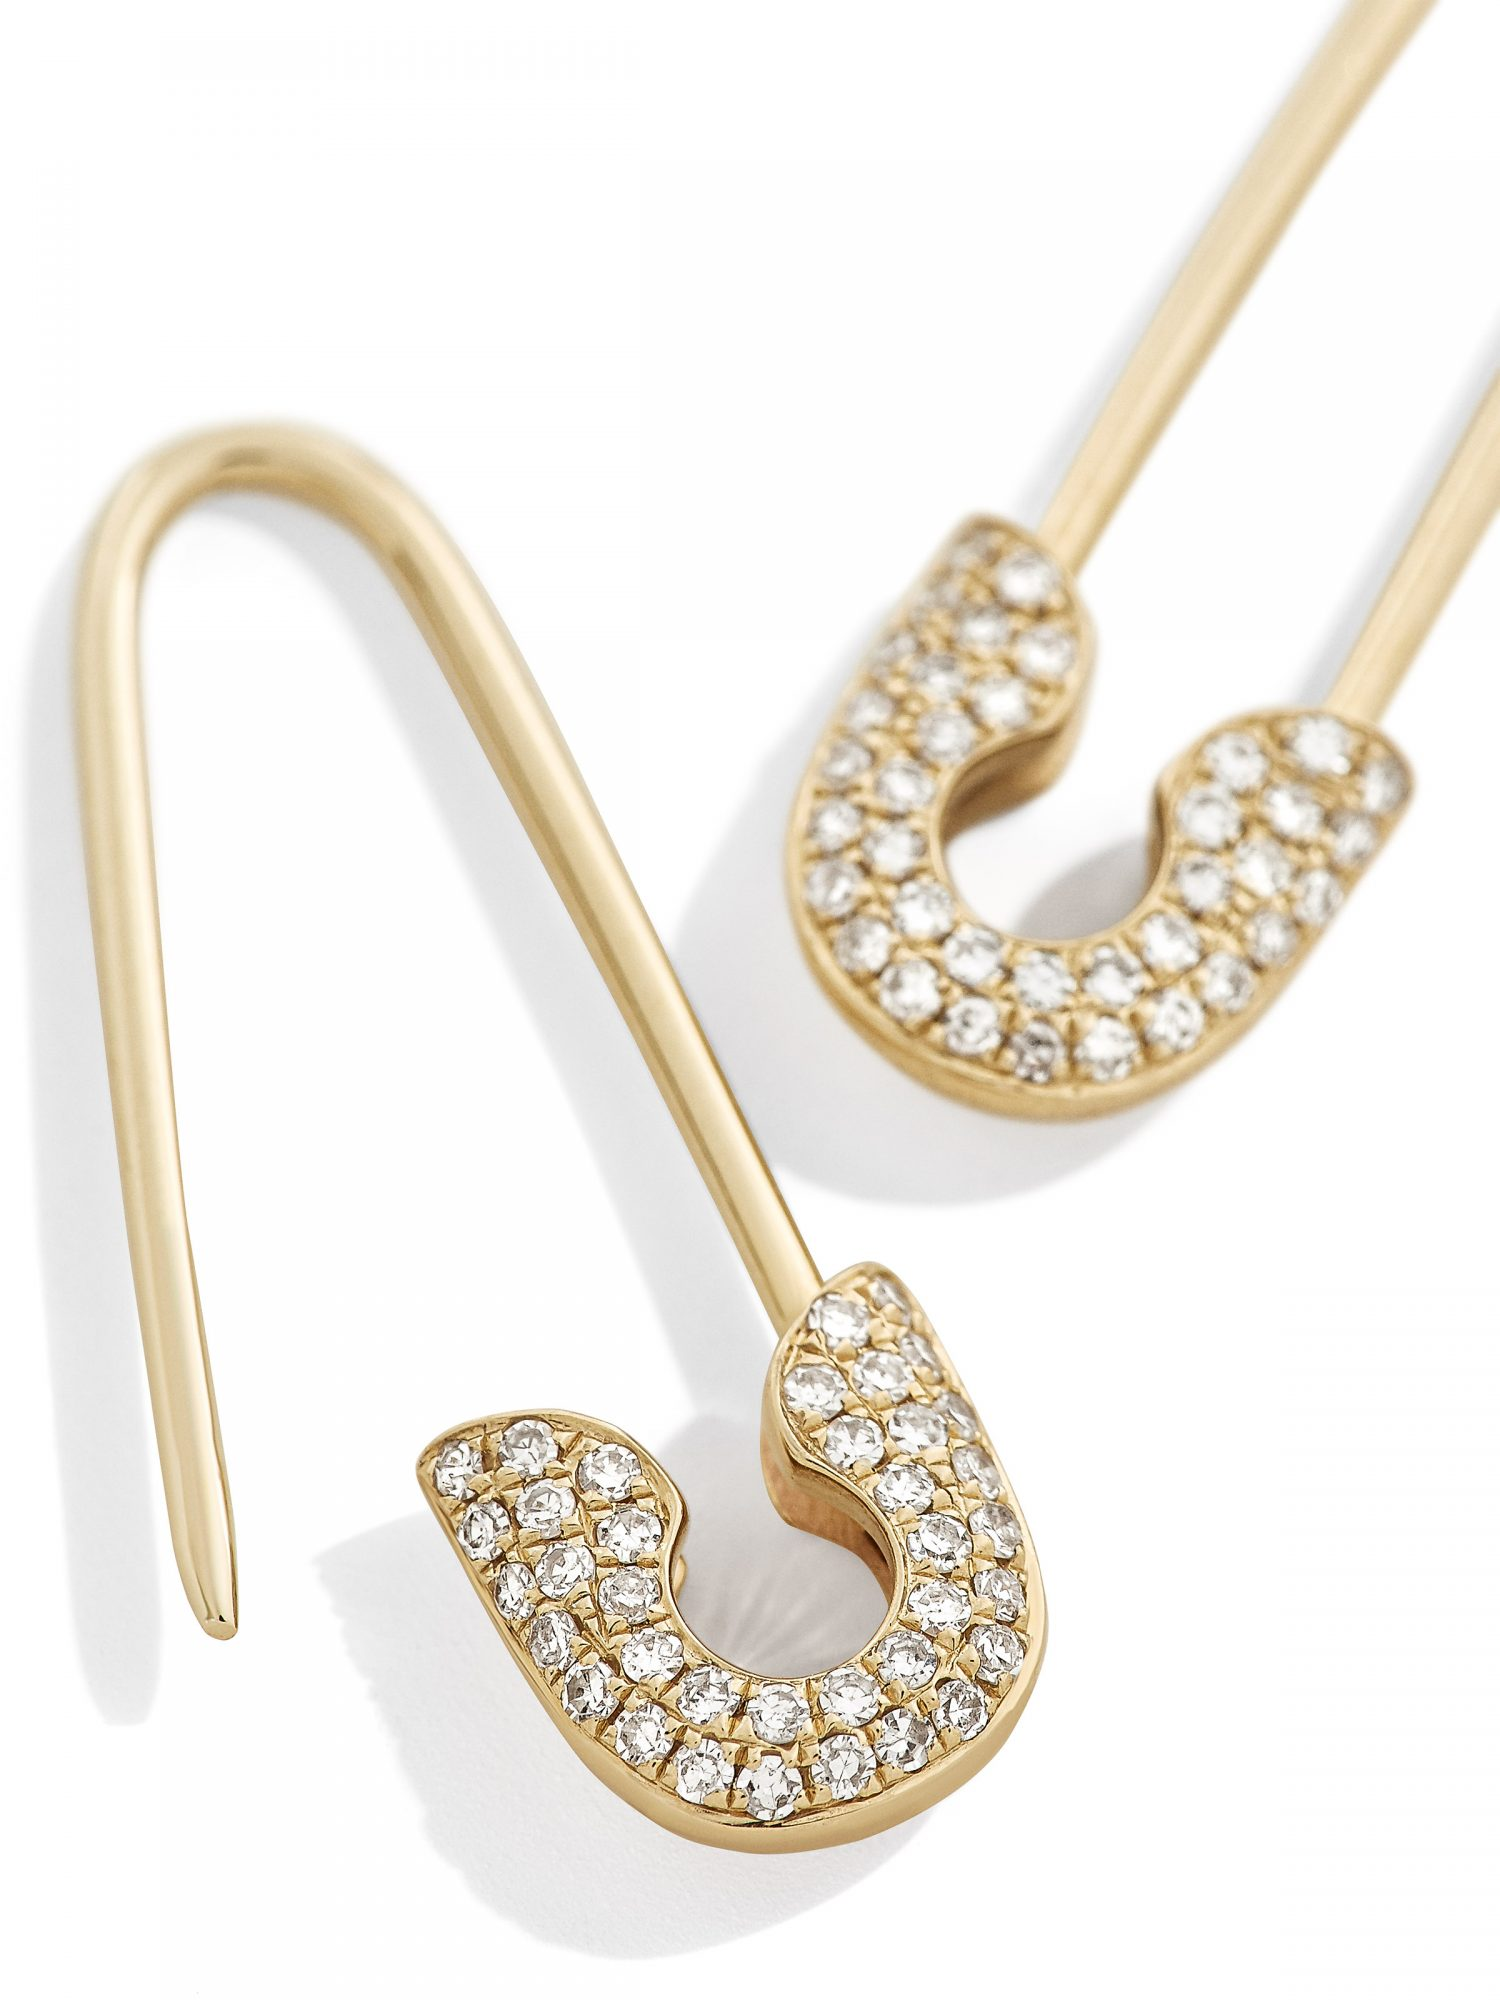 BaubleBar launches fine jewelry collection